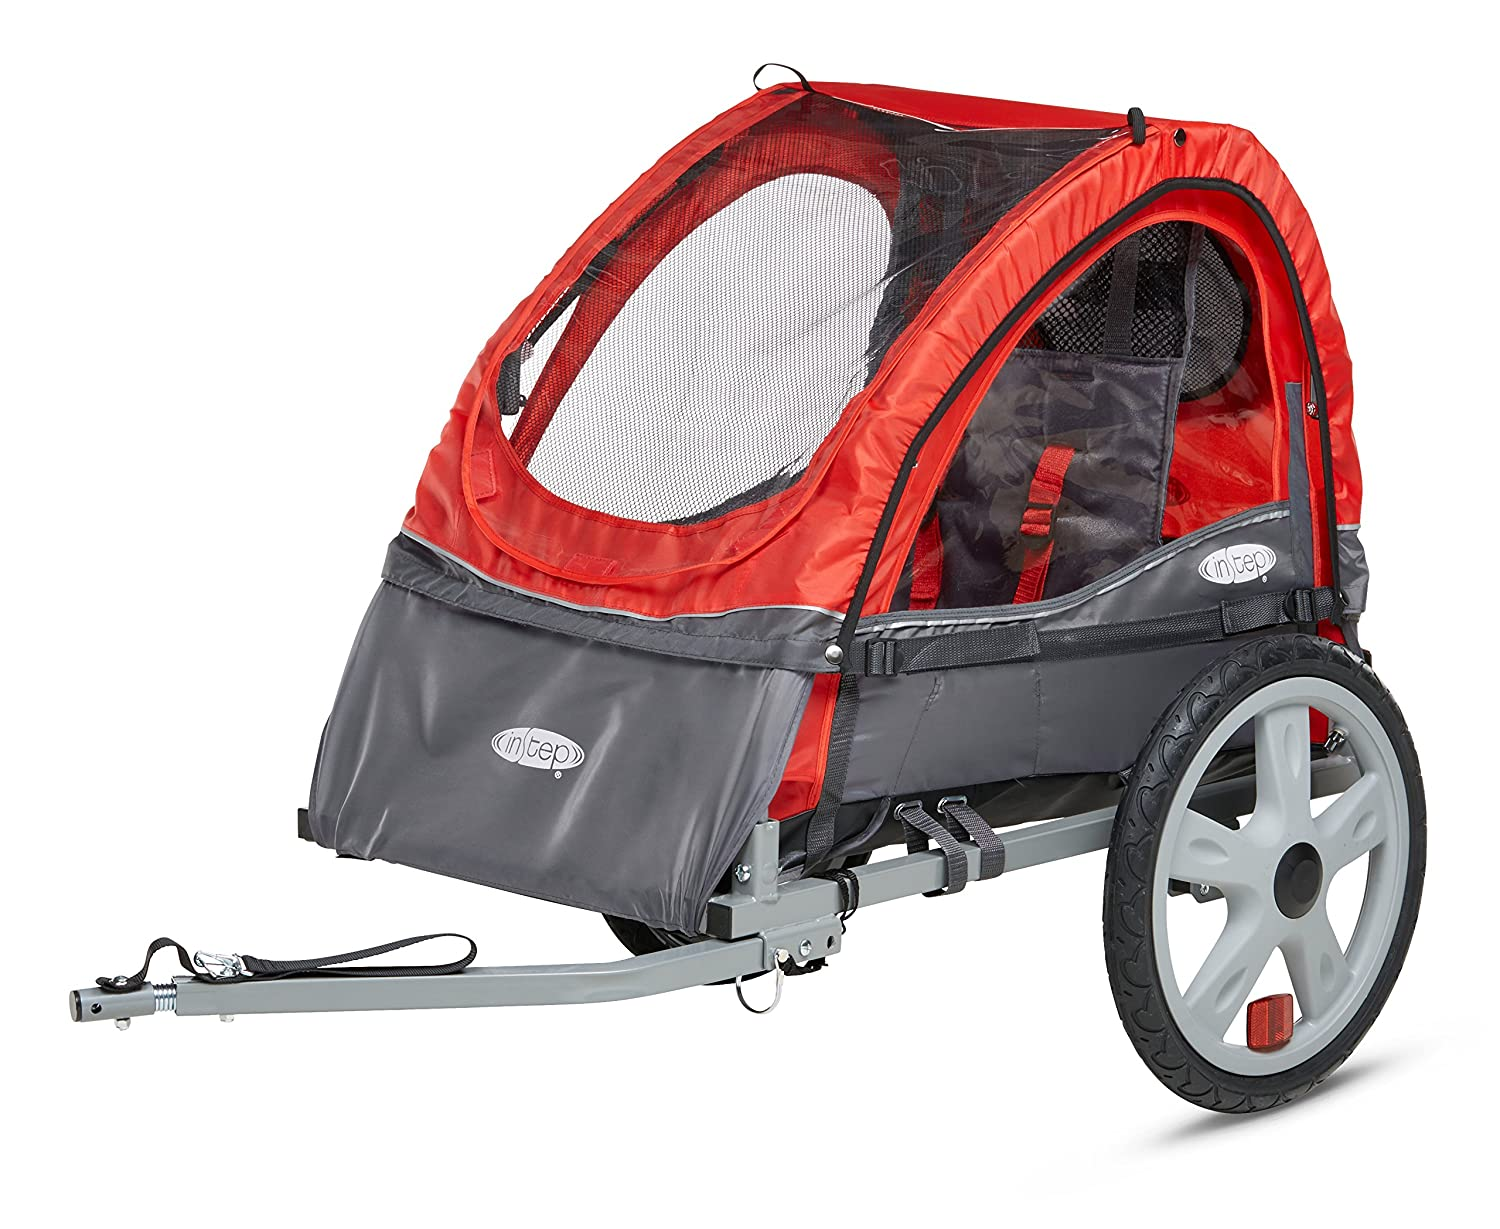 Instep Sync Single Bicycle Trailer Blue Pacific Cycle Inc. 12-QE104A